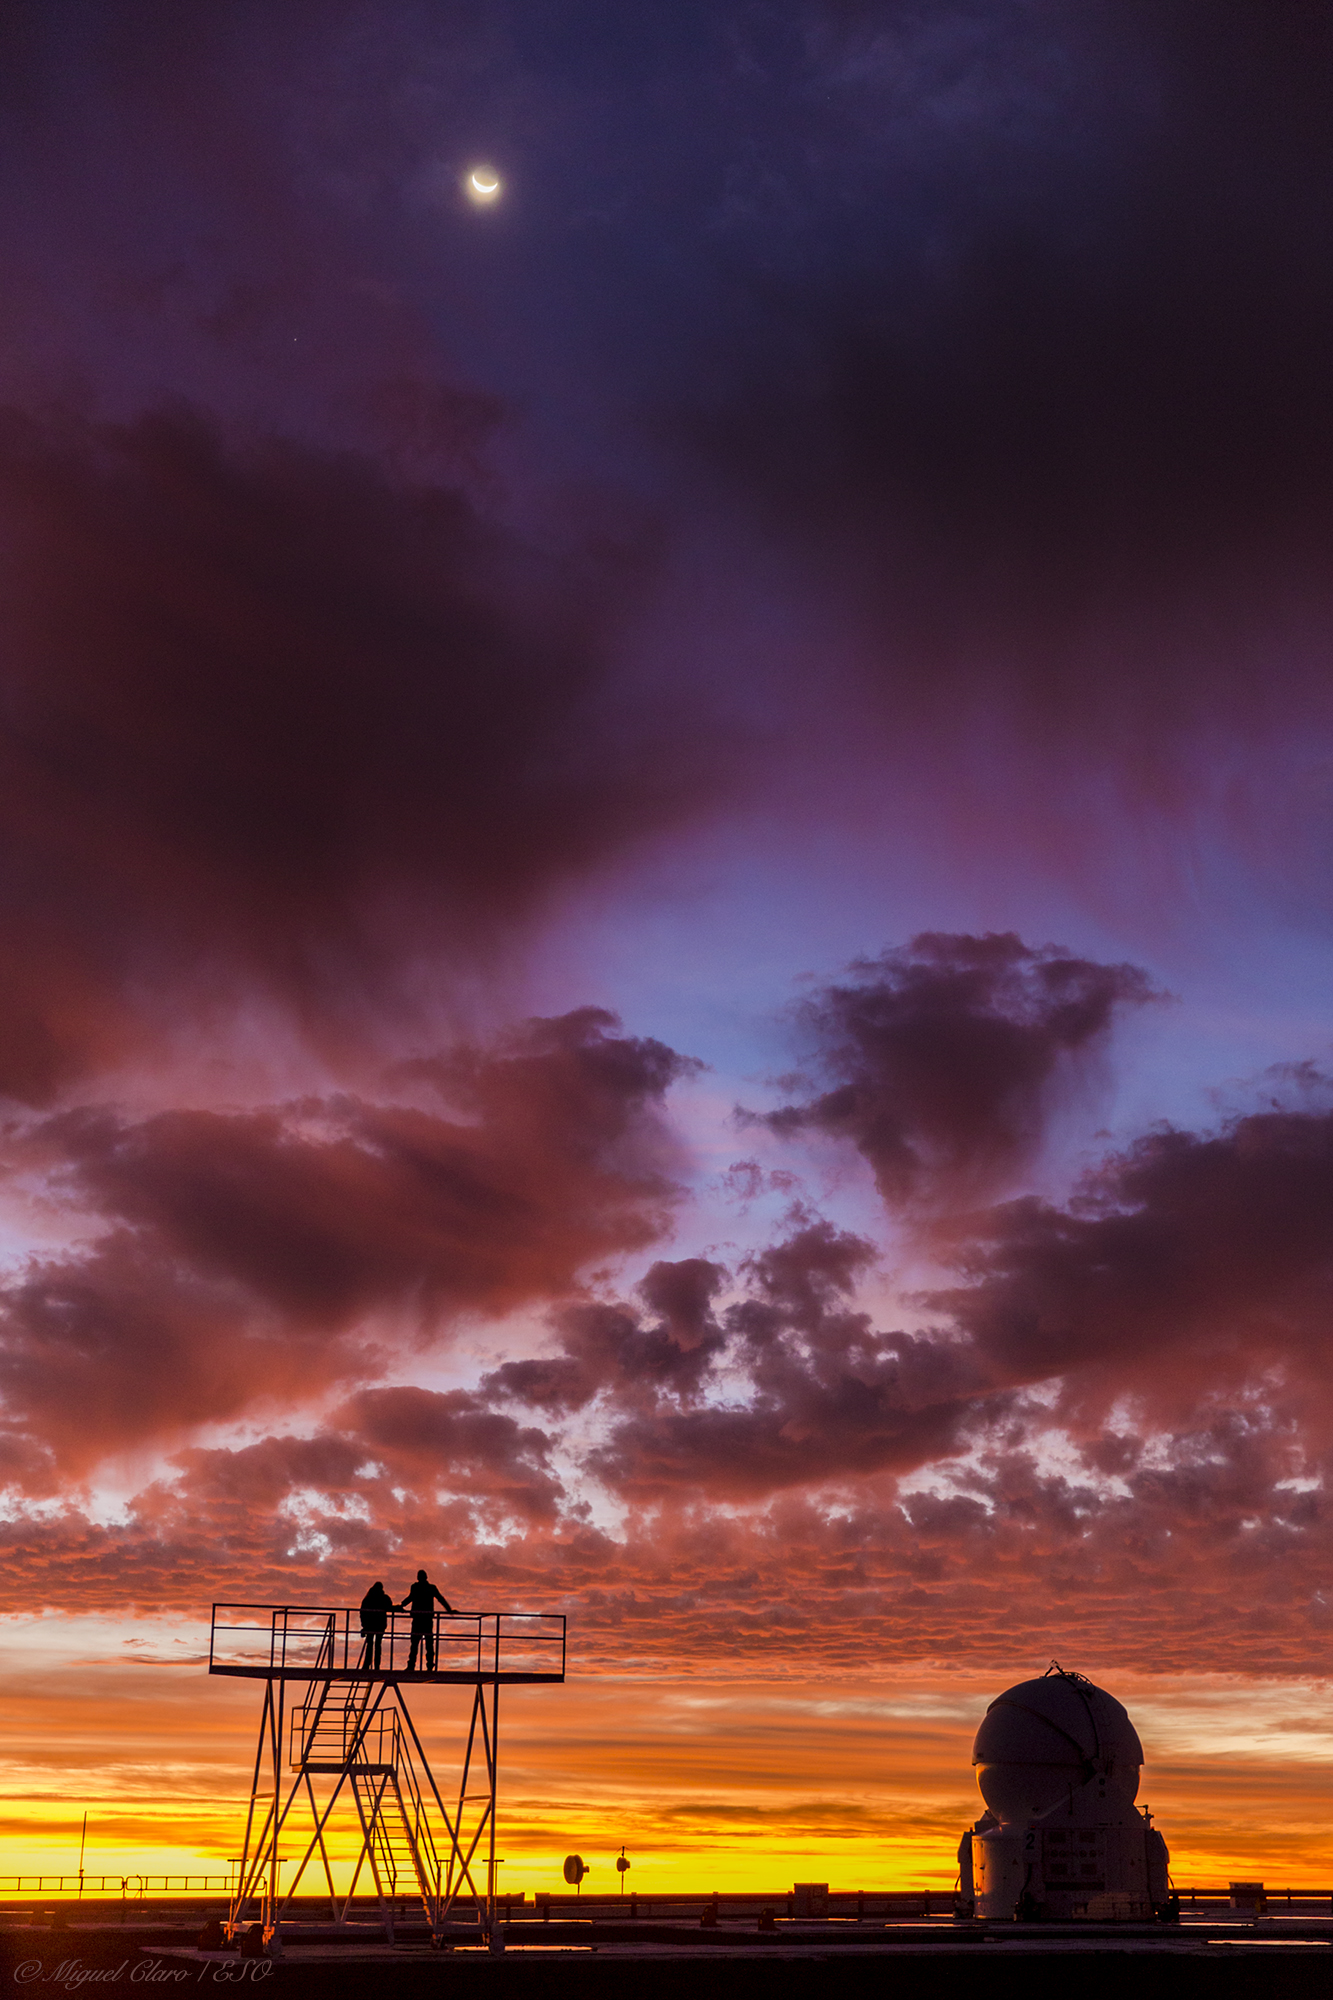 A Romantic Scene in a Lovely Sky @ Astrophotography by Miguel Claro ...